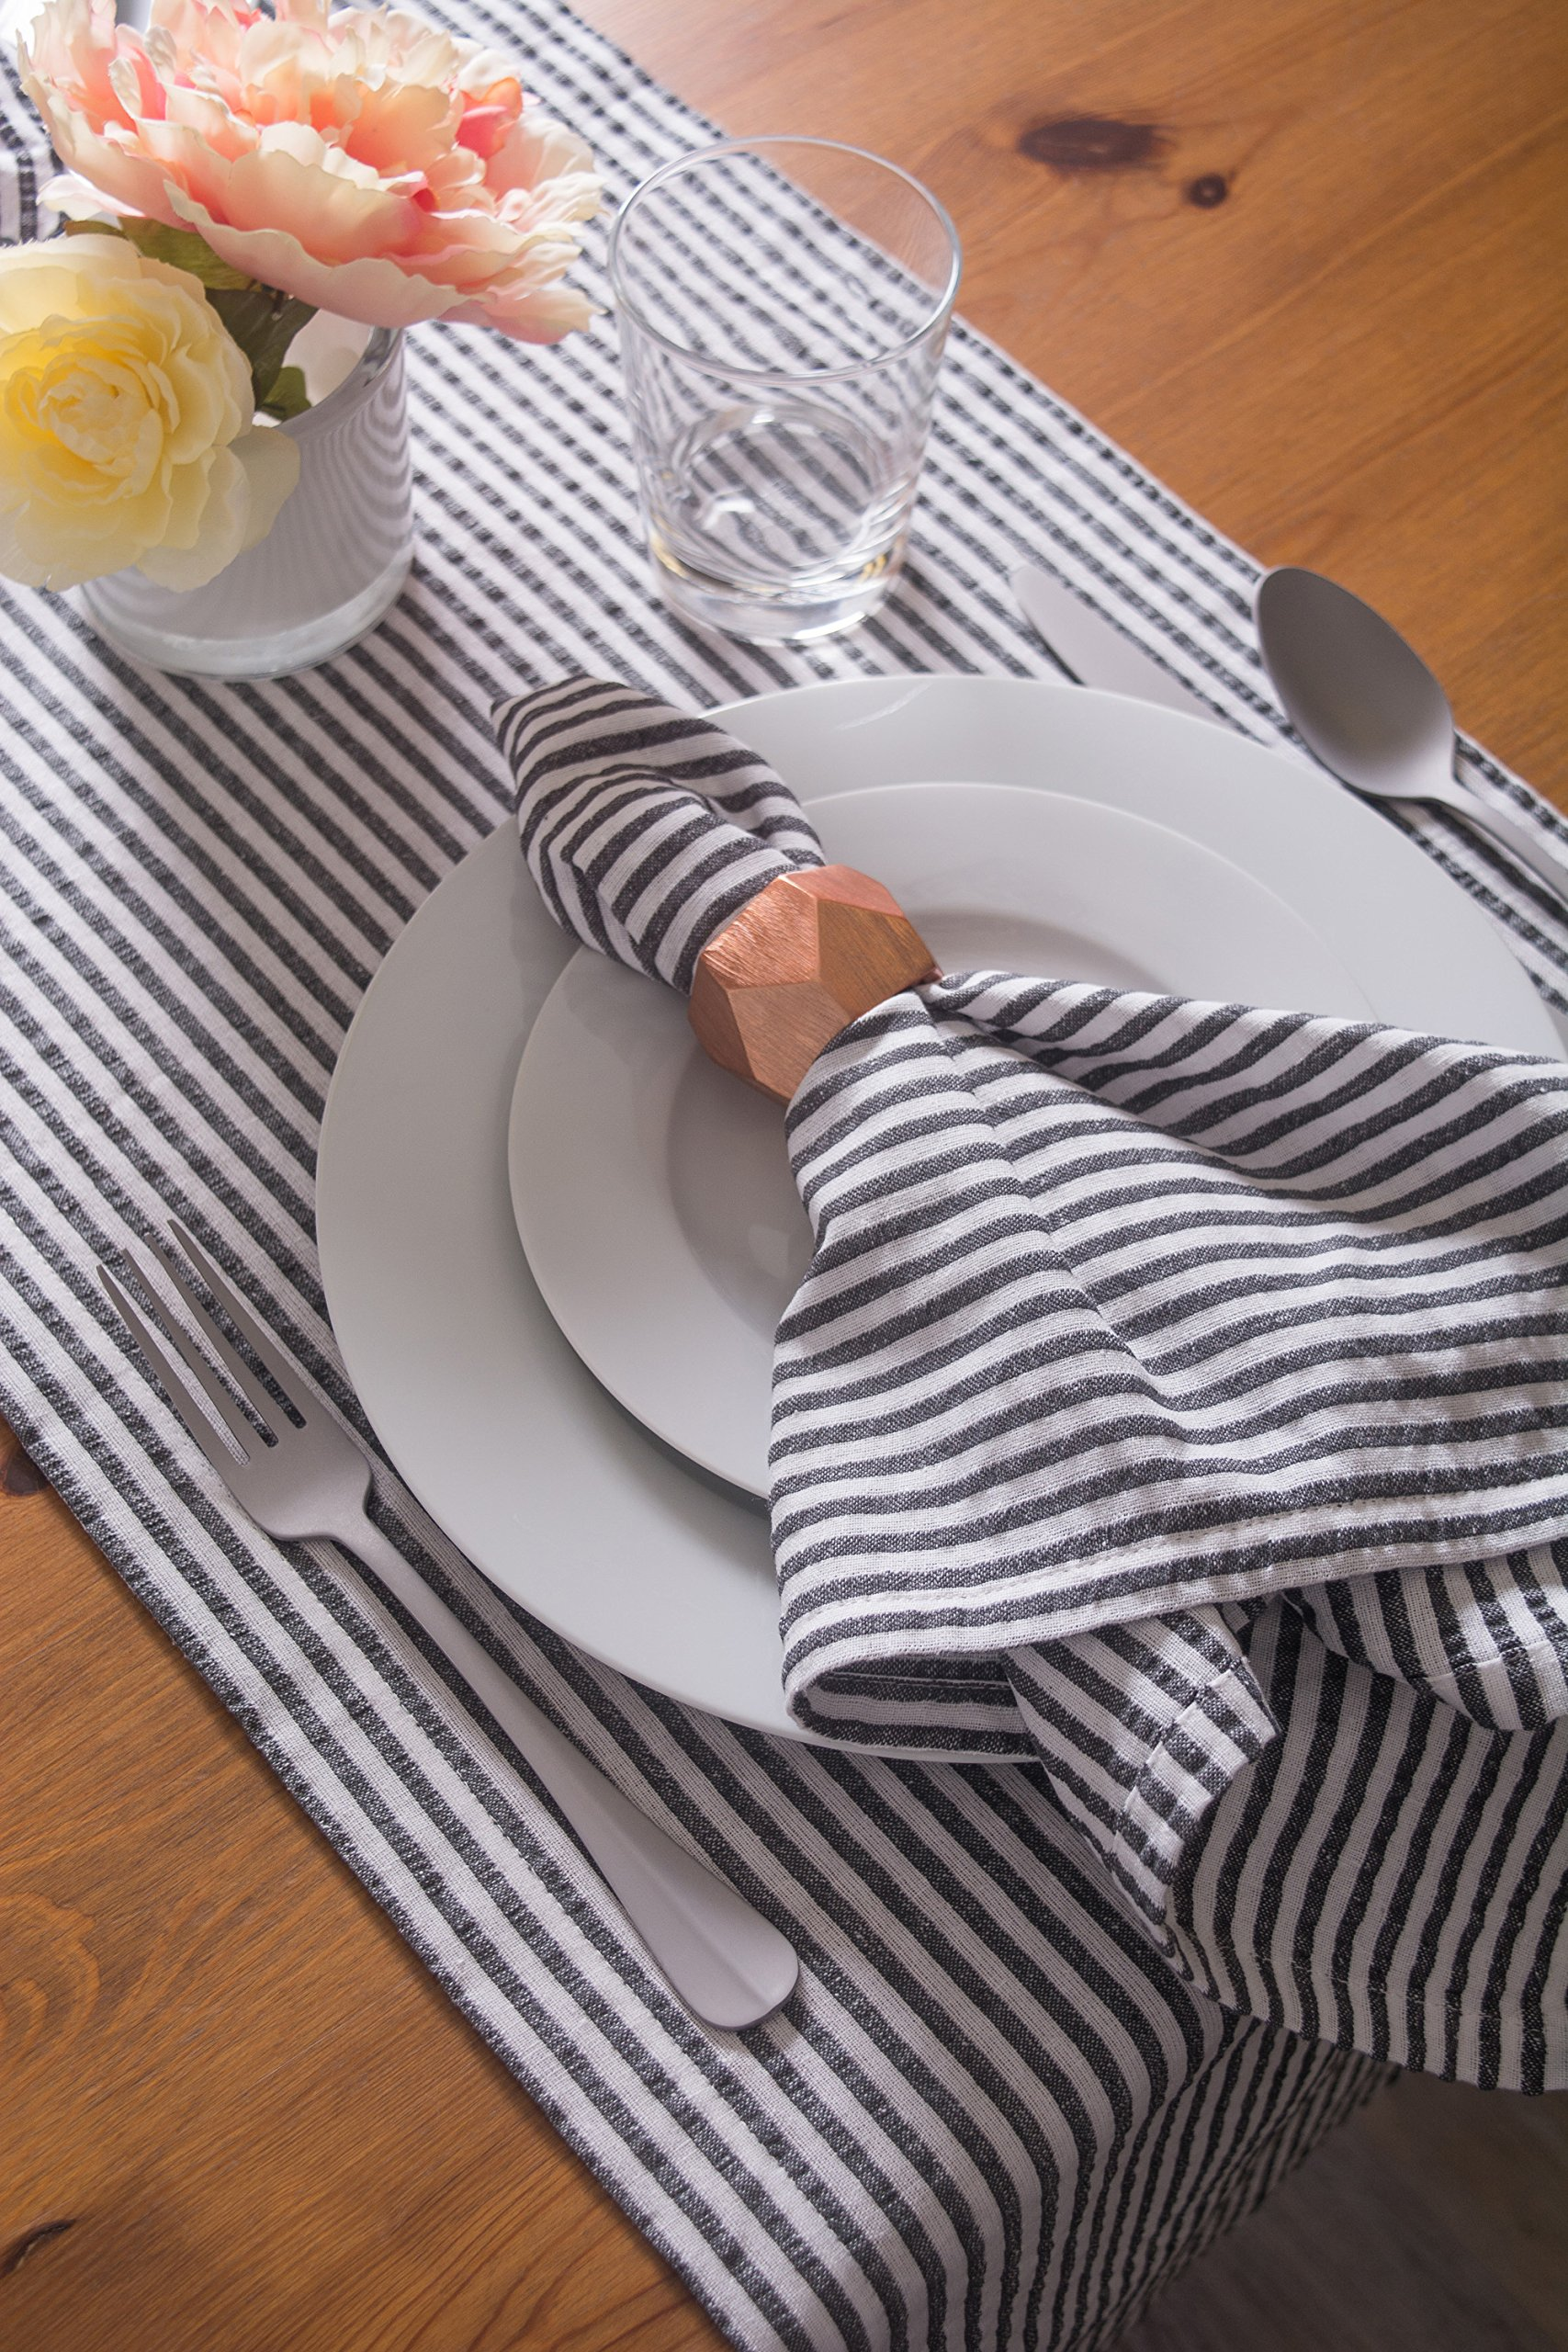 DII Cotton Seersucker Striped Napkin for Brunch, Weddings, Showers, Parties and Everyday Use, 20 x 20'', Mineral Gray and White by DII (Image #6)